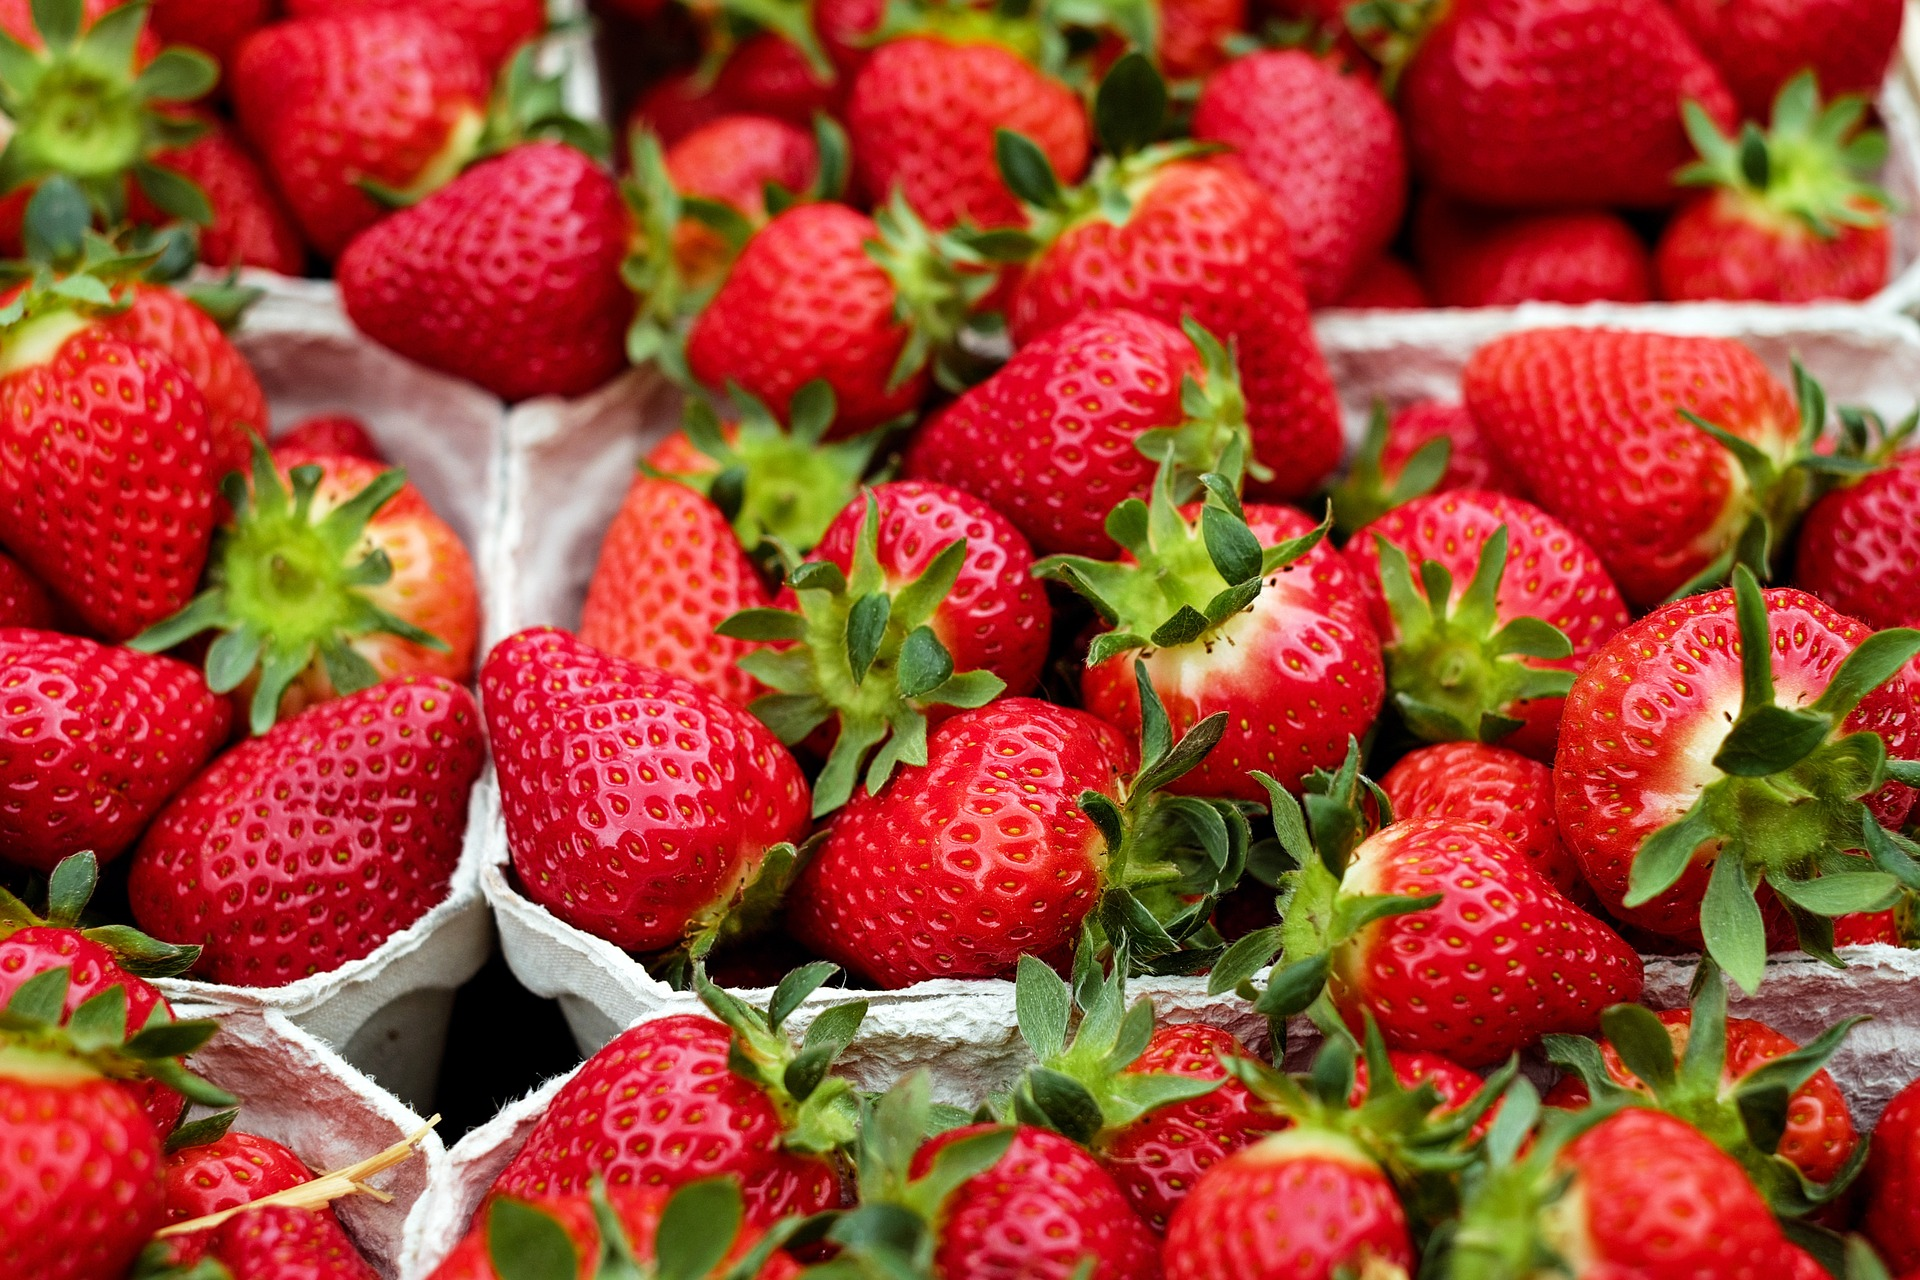 Strawberries Planting Growing And Harvesting Strawberry